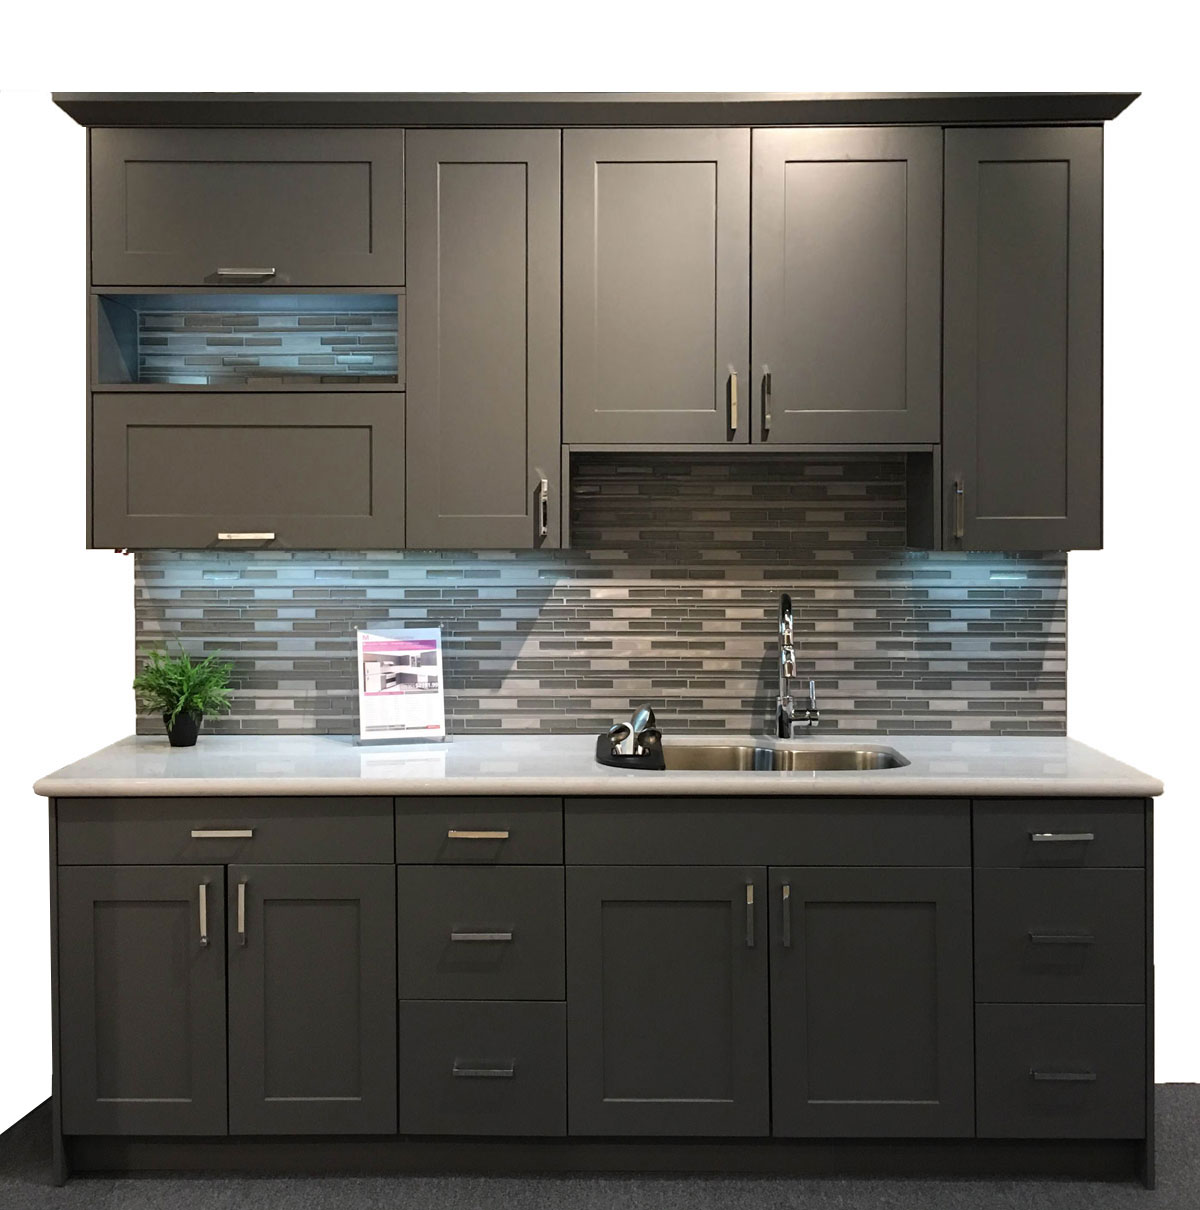 /images/products/kitchen/cabinet/TEC/Revolution/MGY_CTO/8-lg.jpg